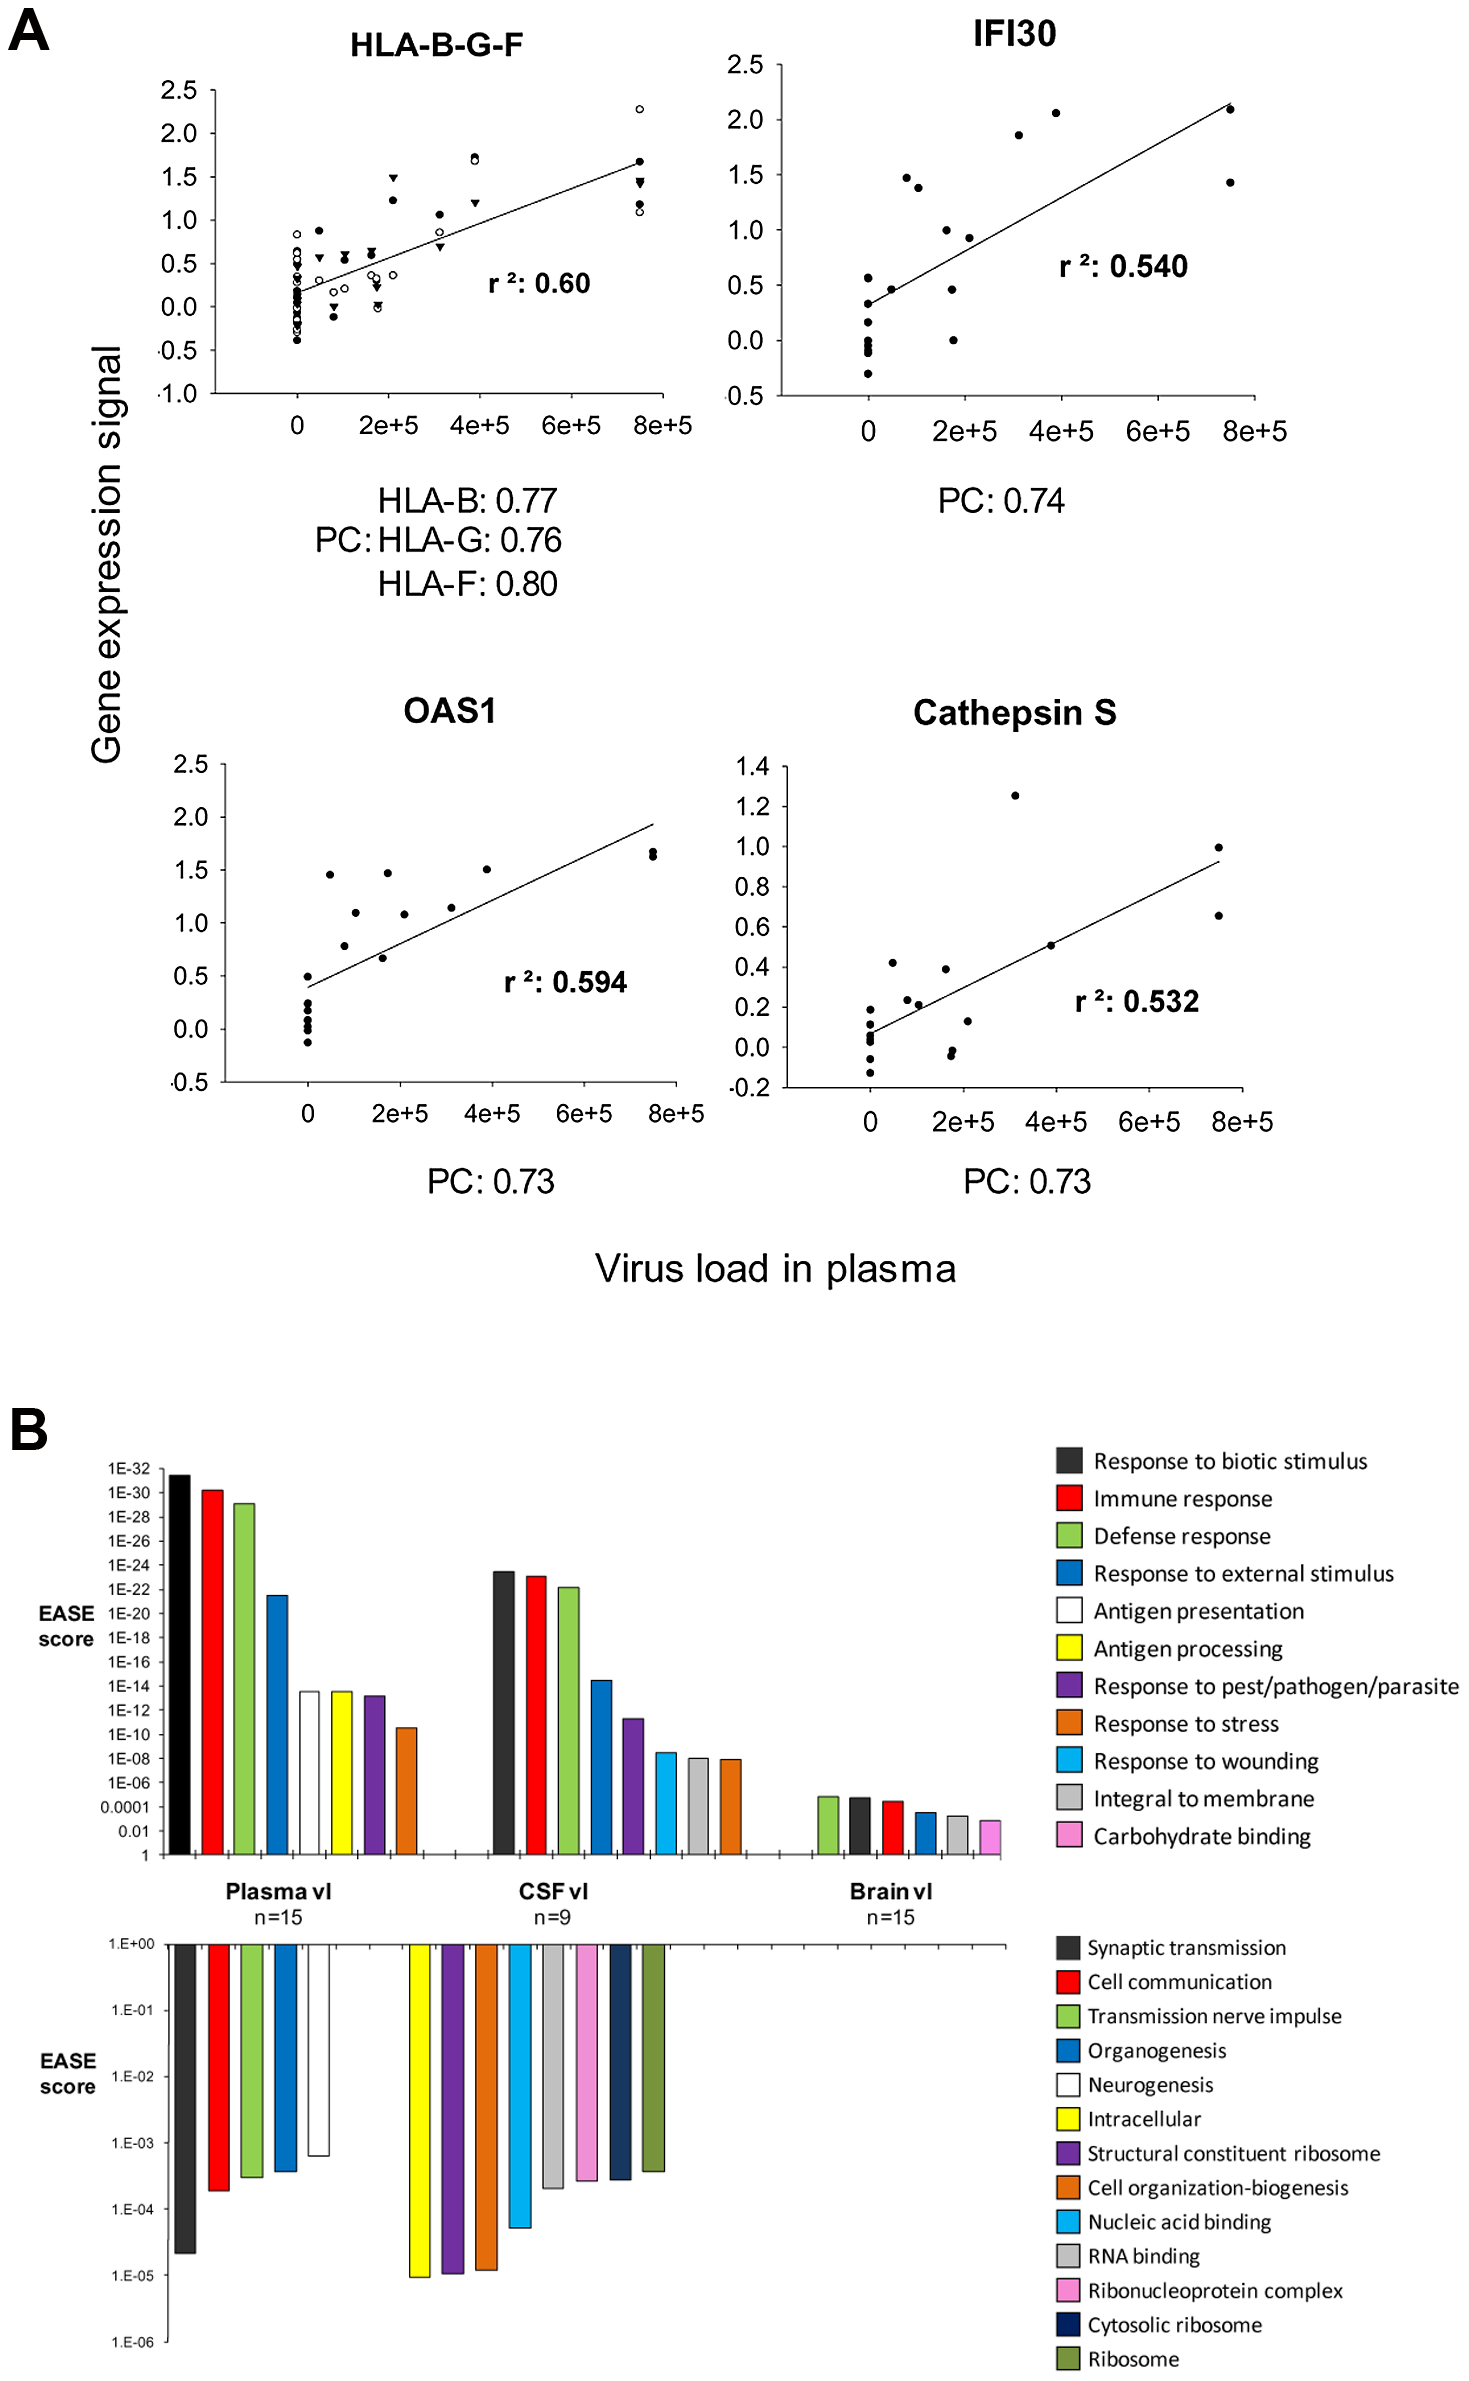 Global gene expression changes in HAND brain correlated the most with plasma and less with CSF and brain virus load.